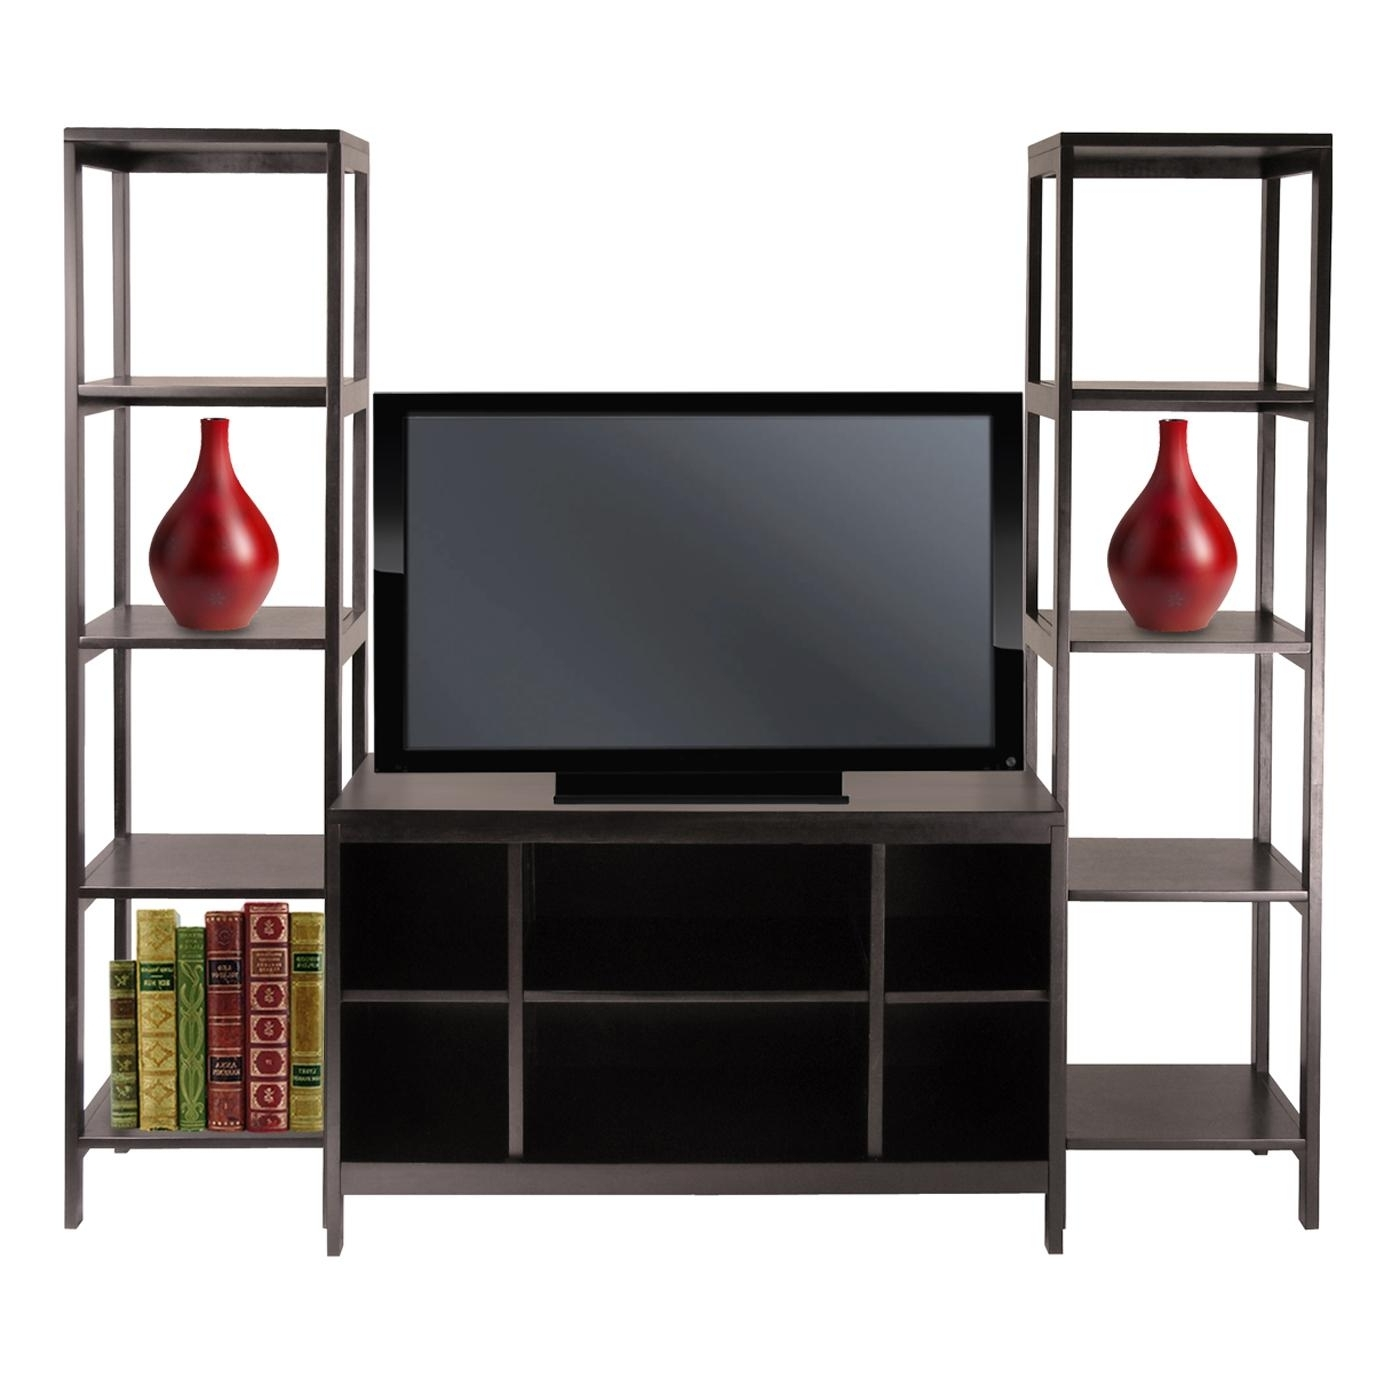 Tv Stand With Bookcases Home Decor Interior Exterior Lovely Under With Best And Newest Bookcases Tv Stand (View 10 of 15)